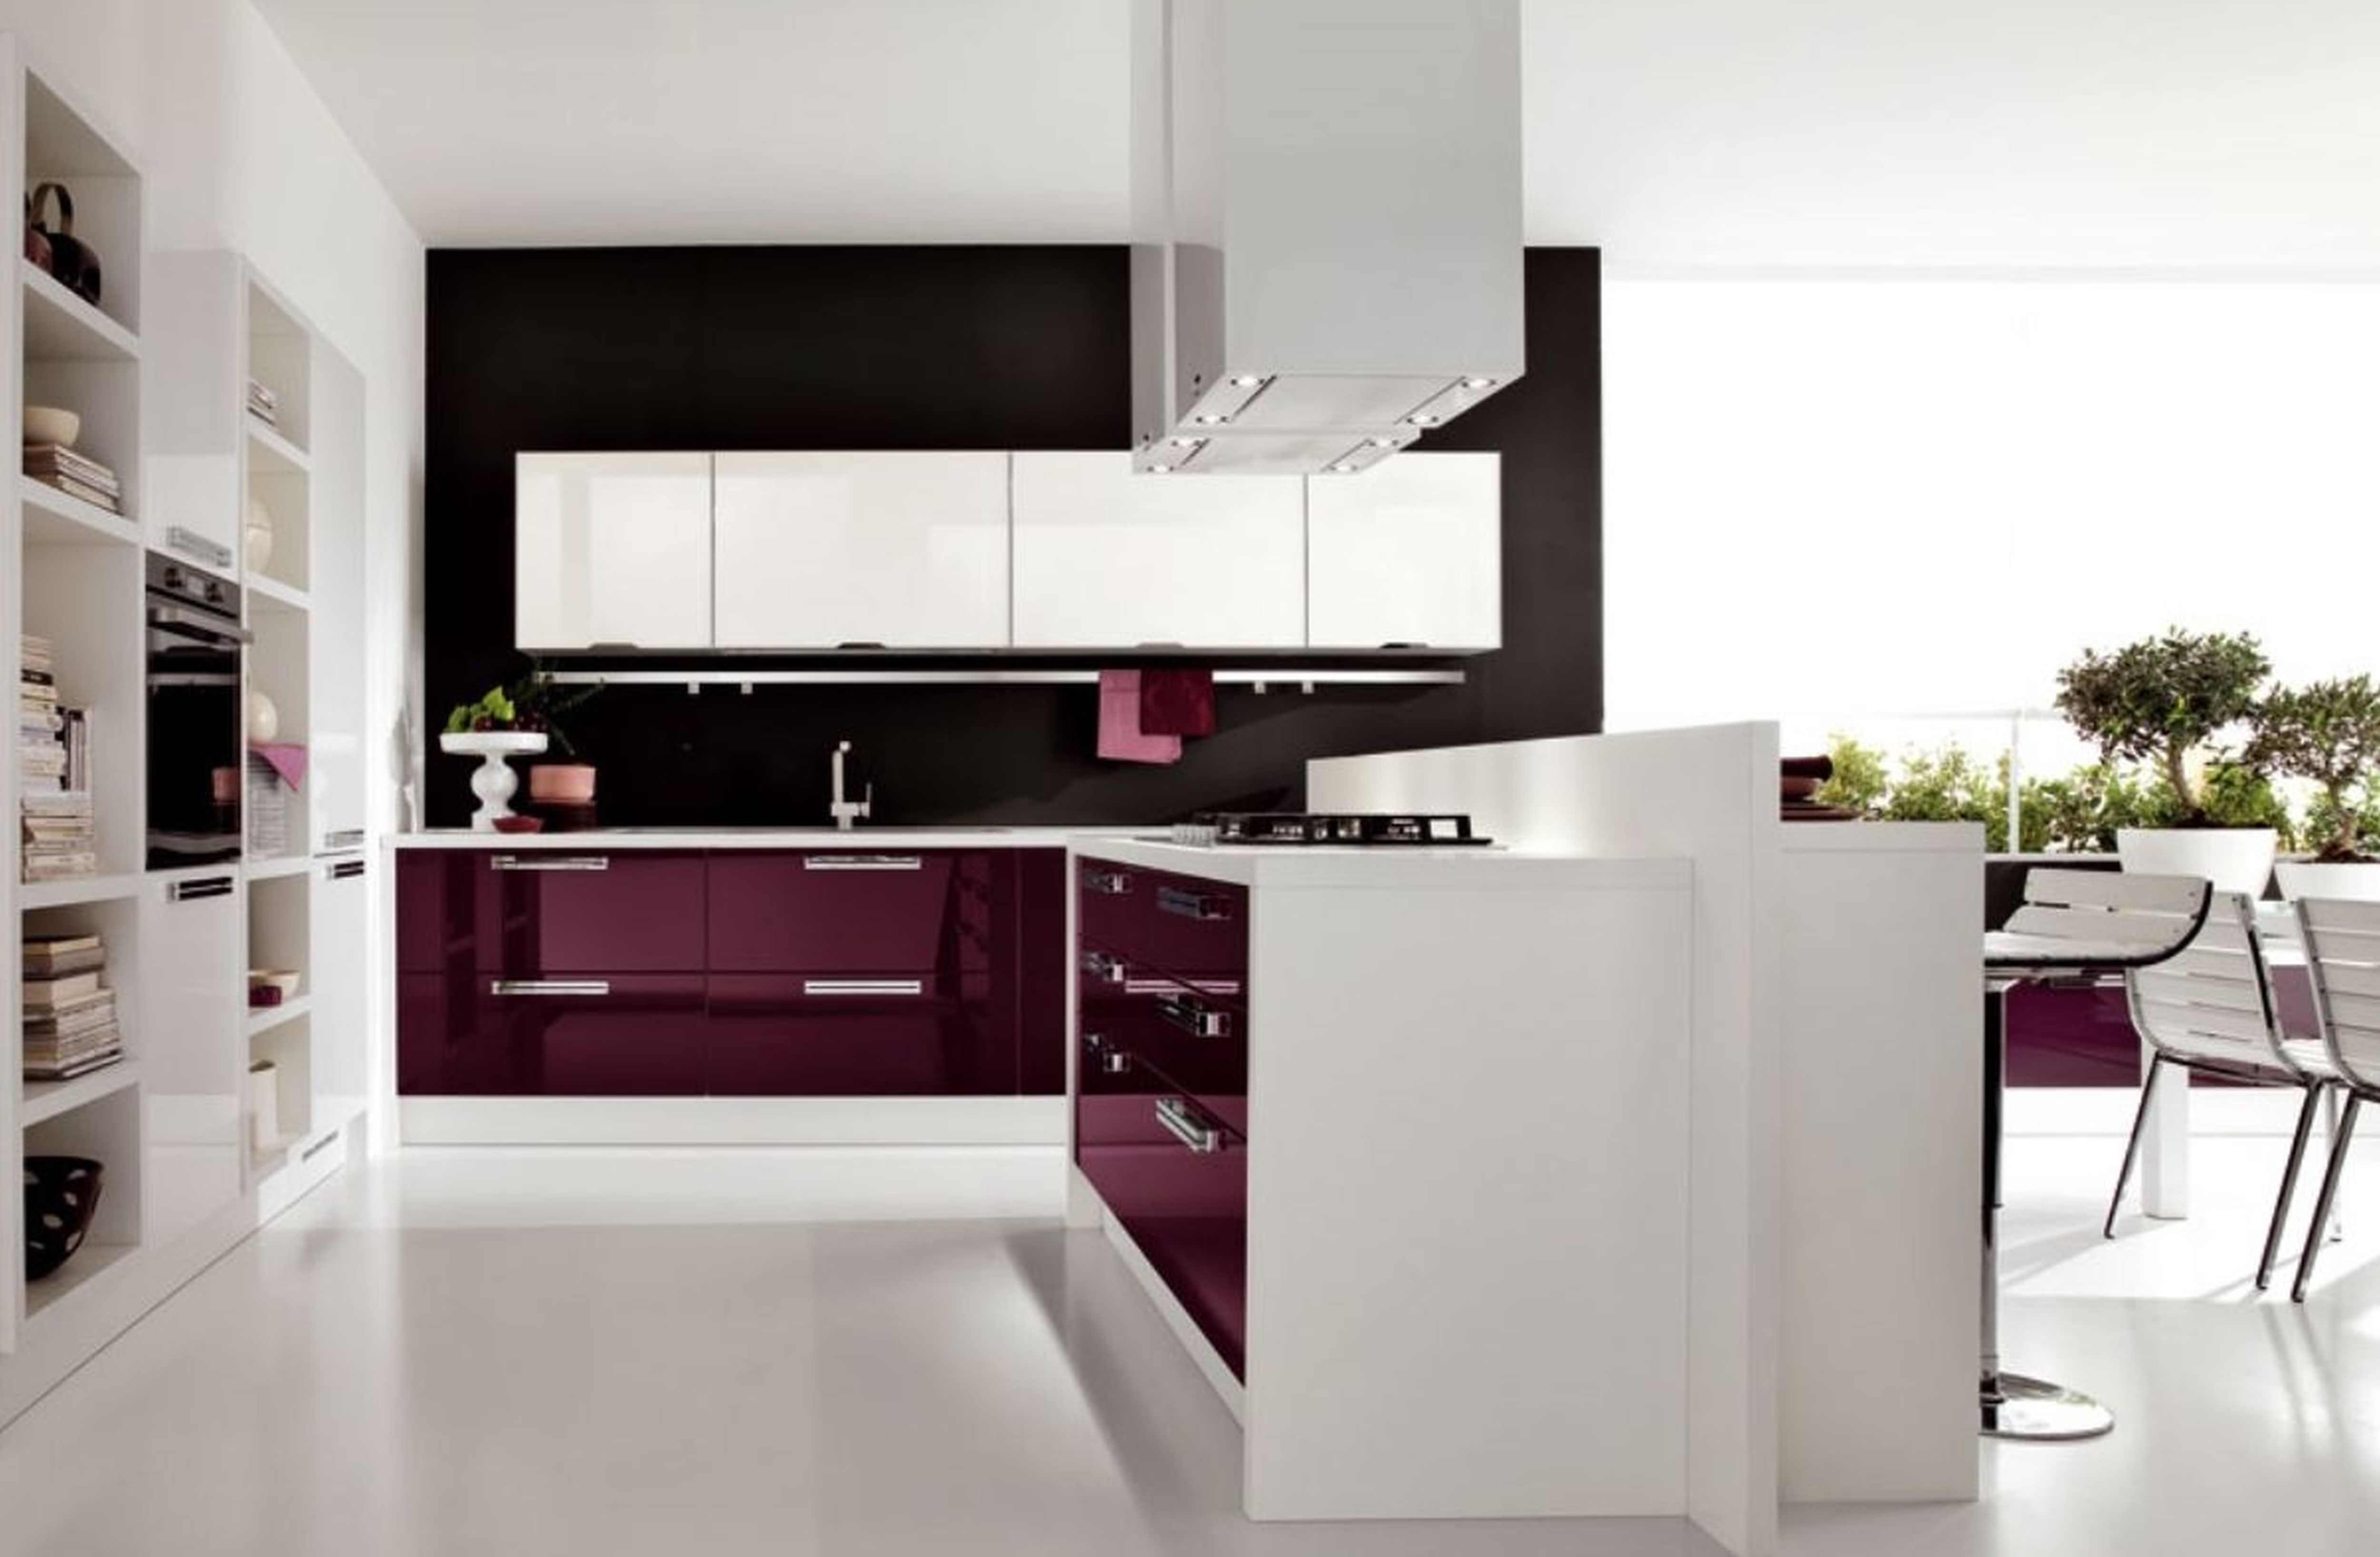 Interior design images good modern kitchen design gallery for Modern kitchen wallpaper ideas